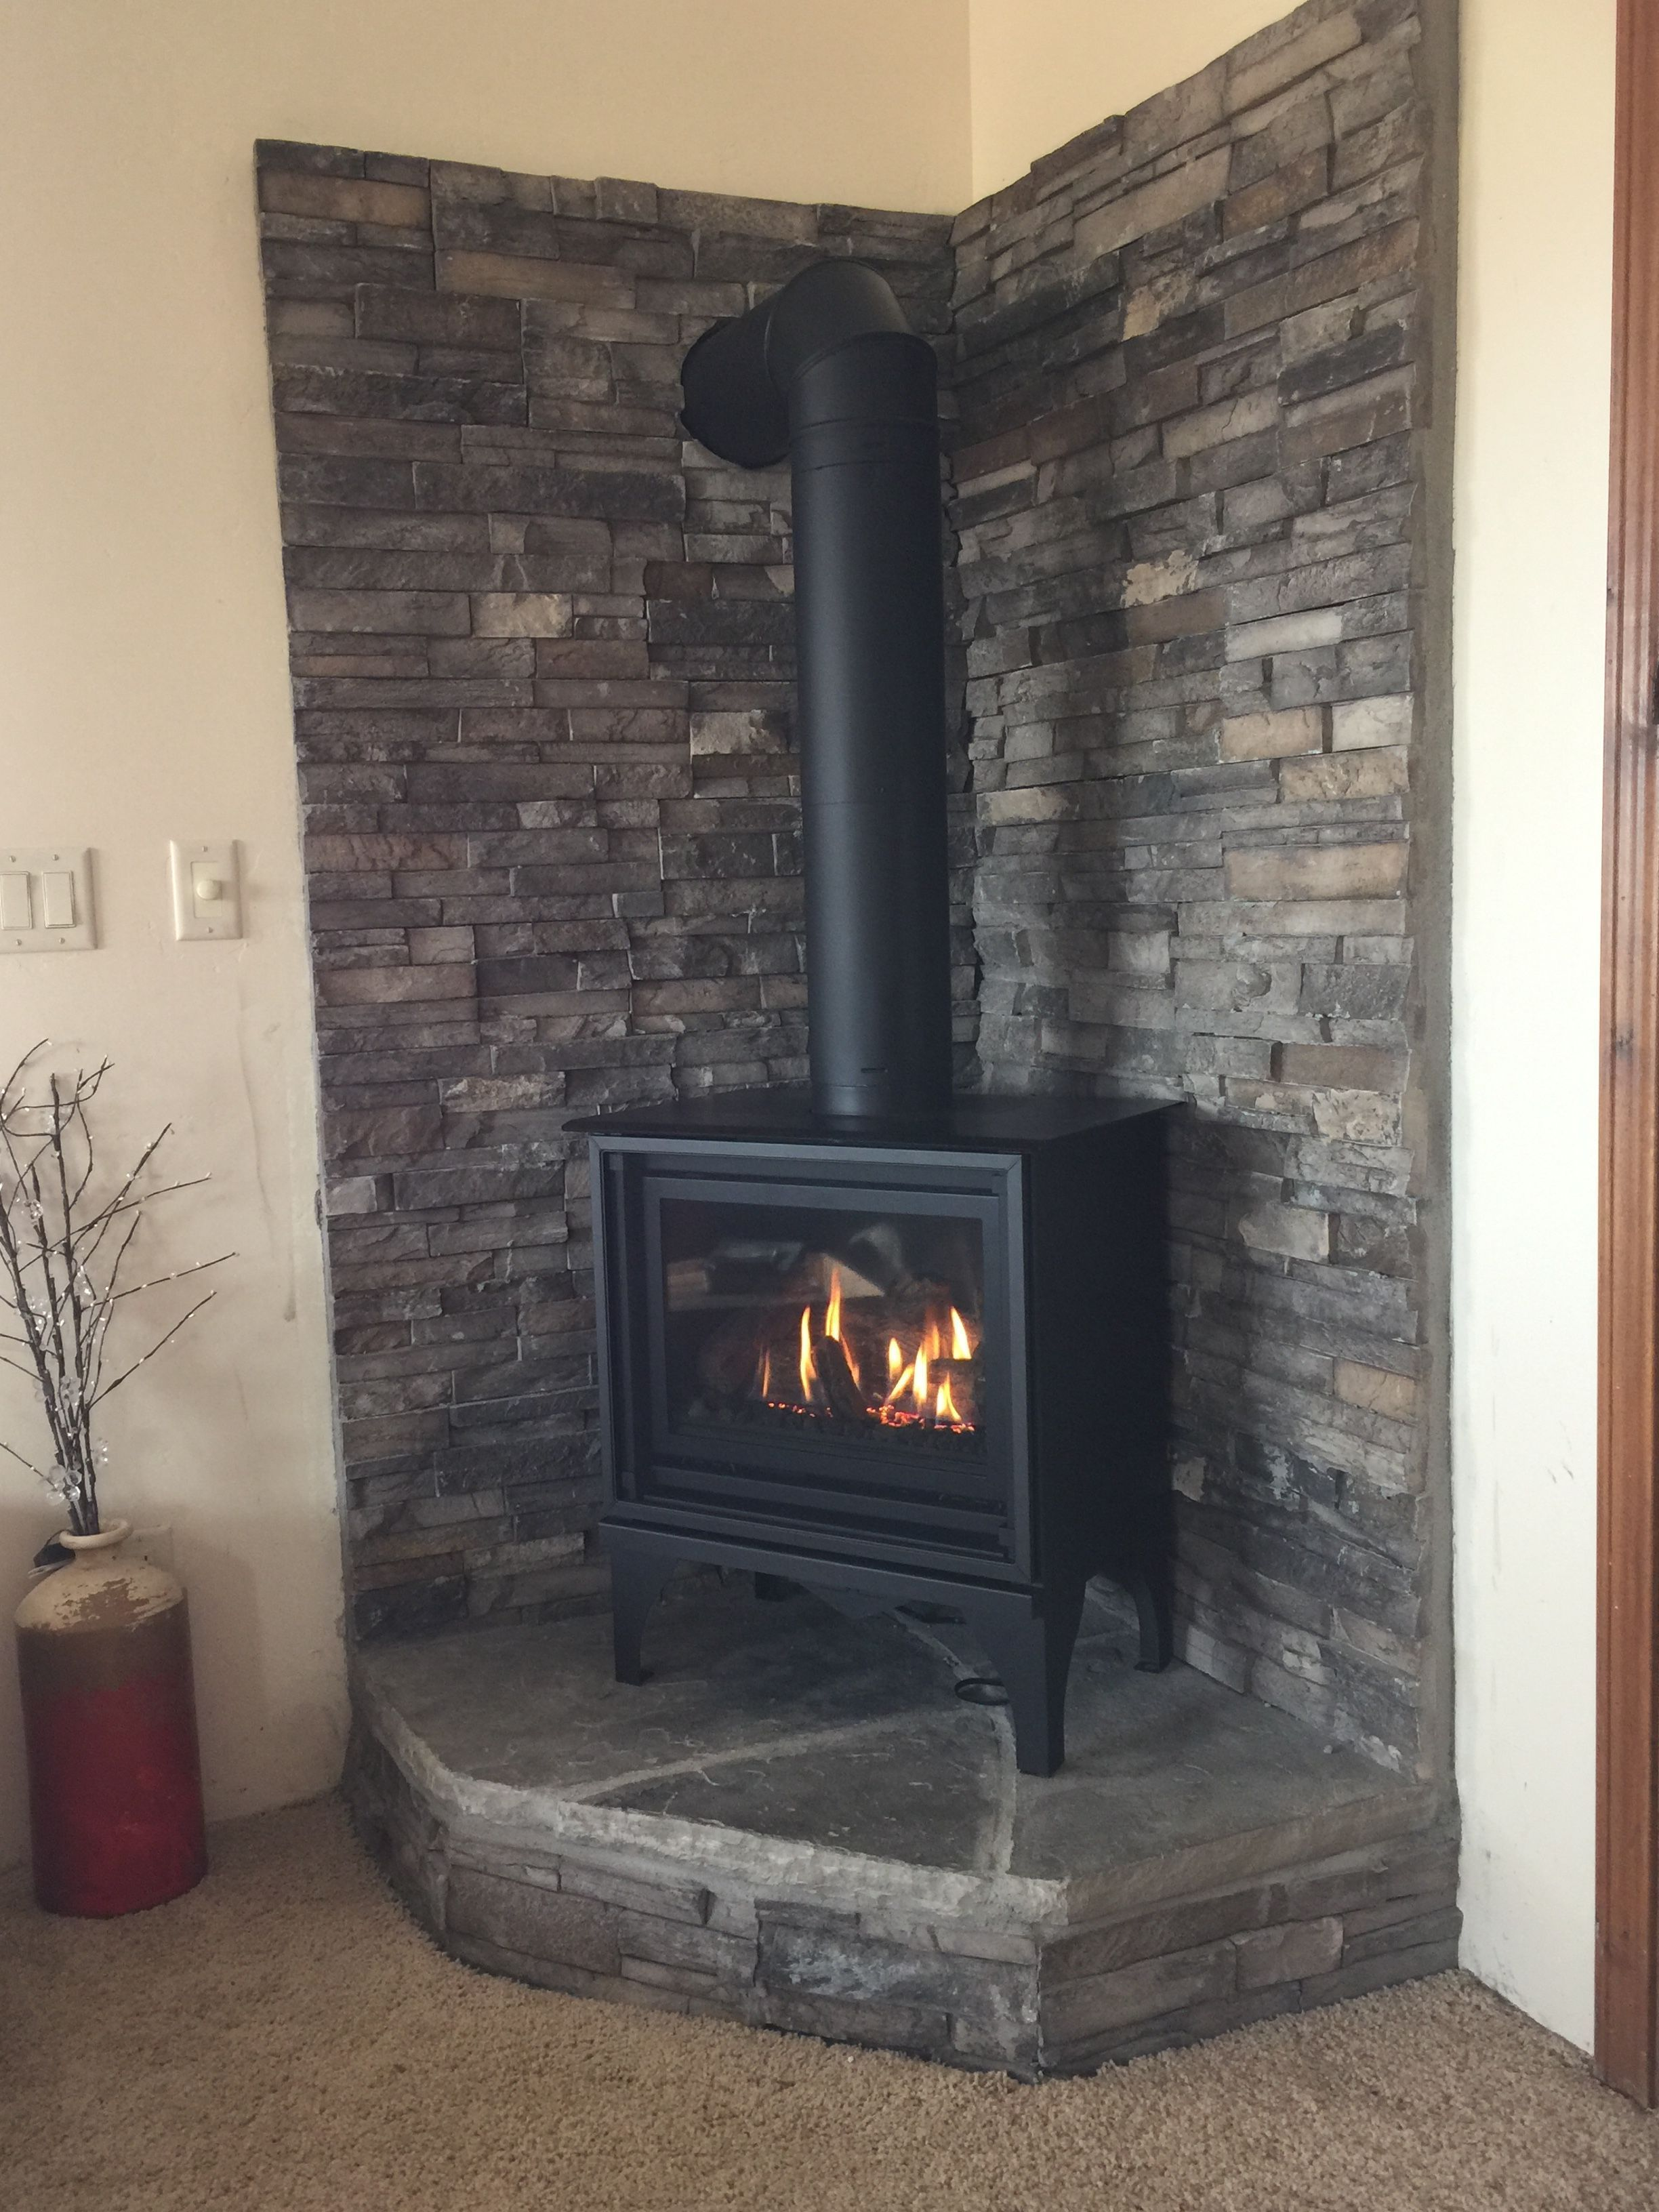 Most Recent Images Fireplace Hearth Decorating Style Hearths Have